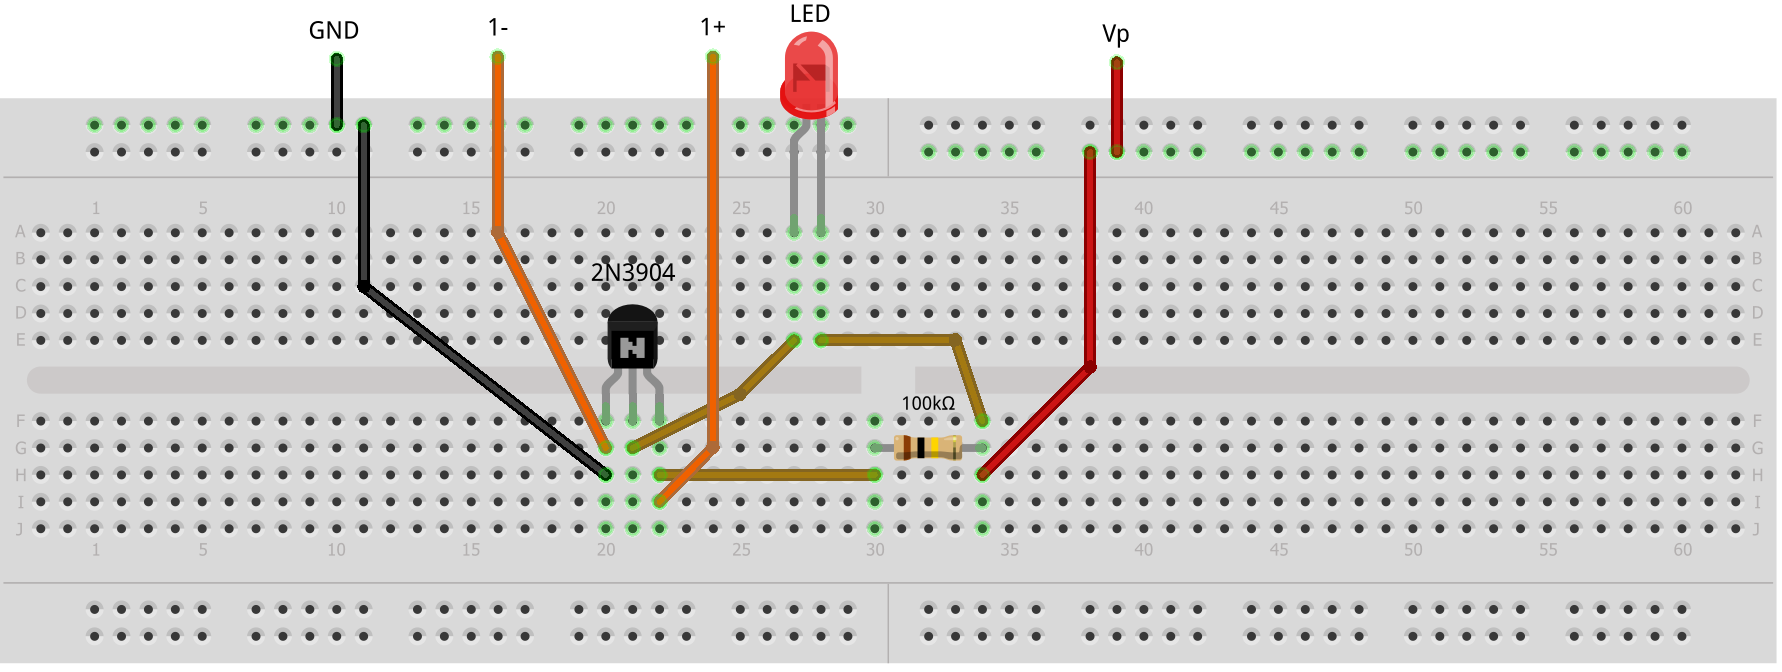 Activity Led As Light Sensor Analog Devices Wiki Circuit Sensitive Switch With Ldr 2n2926 Hardware Setup Figure 2 And Single Common Emitter Npn Breadboard